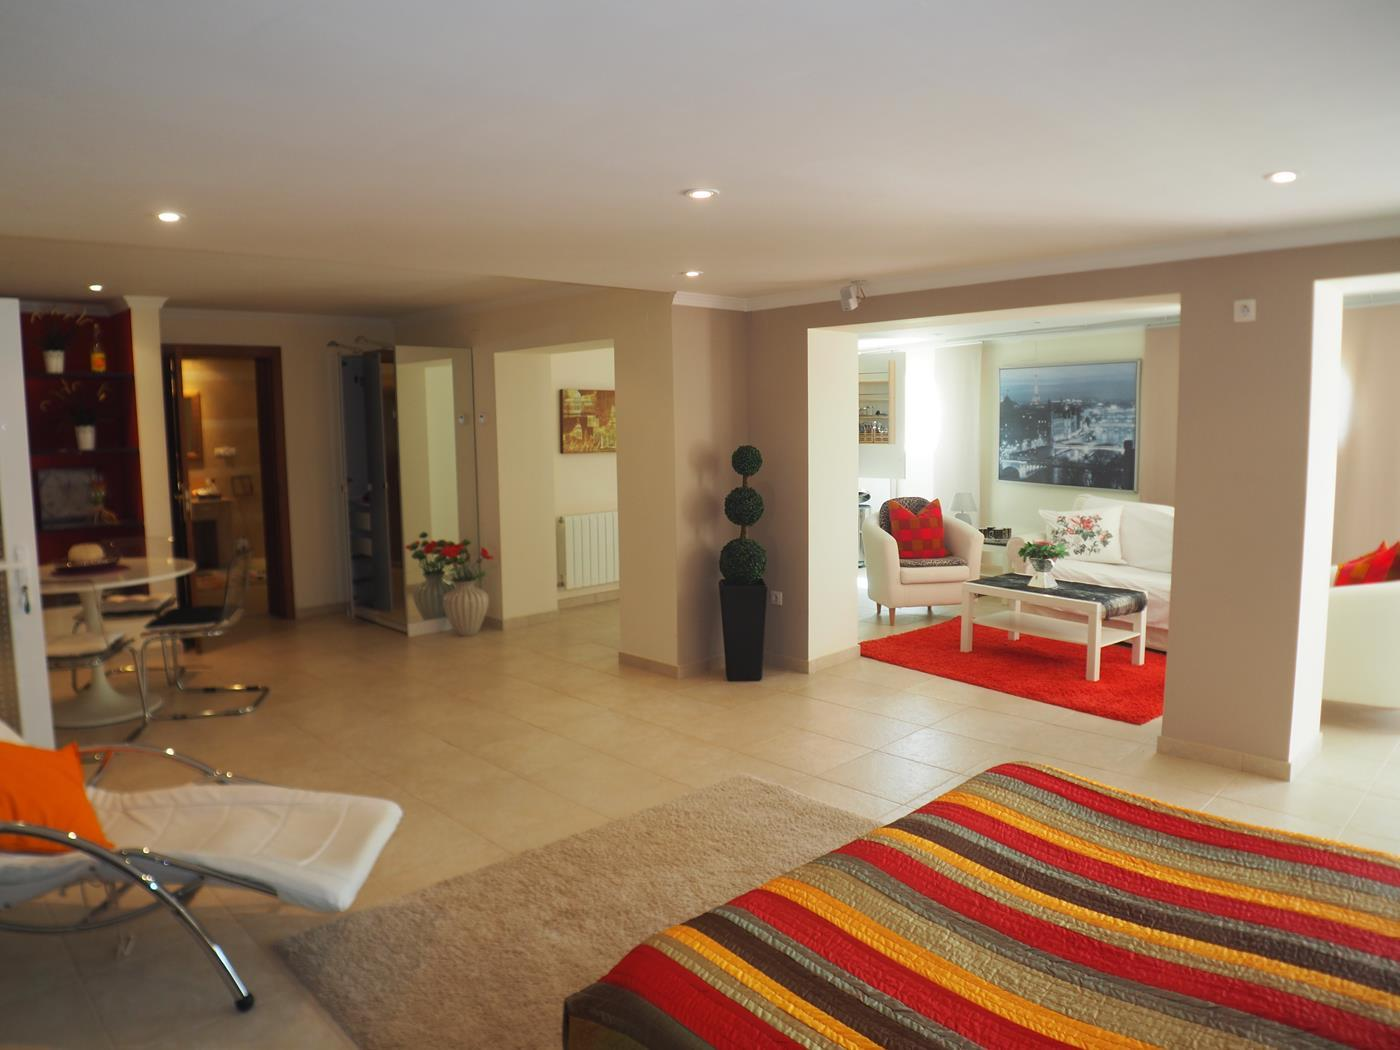 Fotogallerij - 19 - Exceptional homes in the Costa Blanca. Unparalleled Service. Exceptional properties in the Costa Blanca